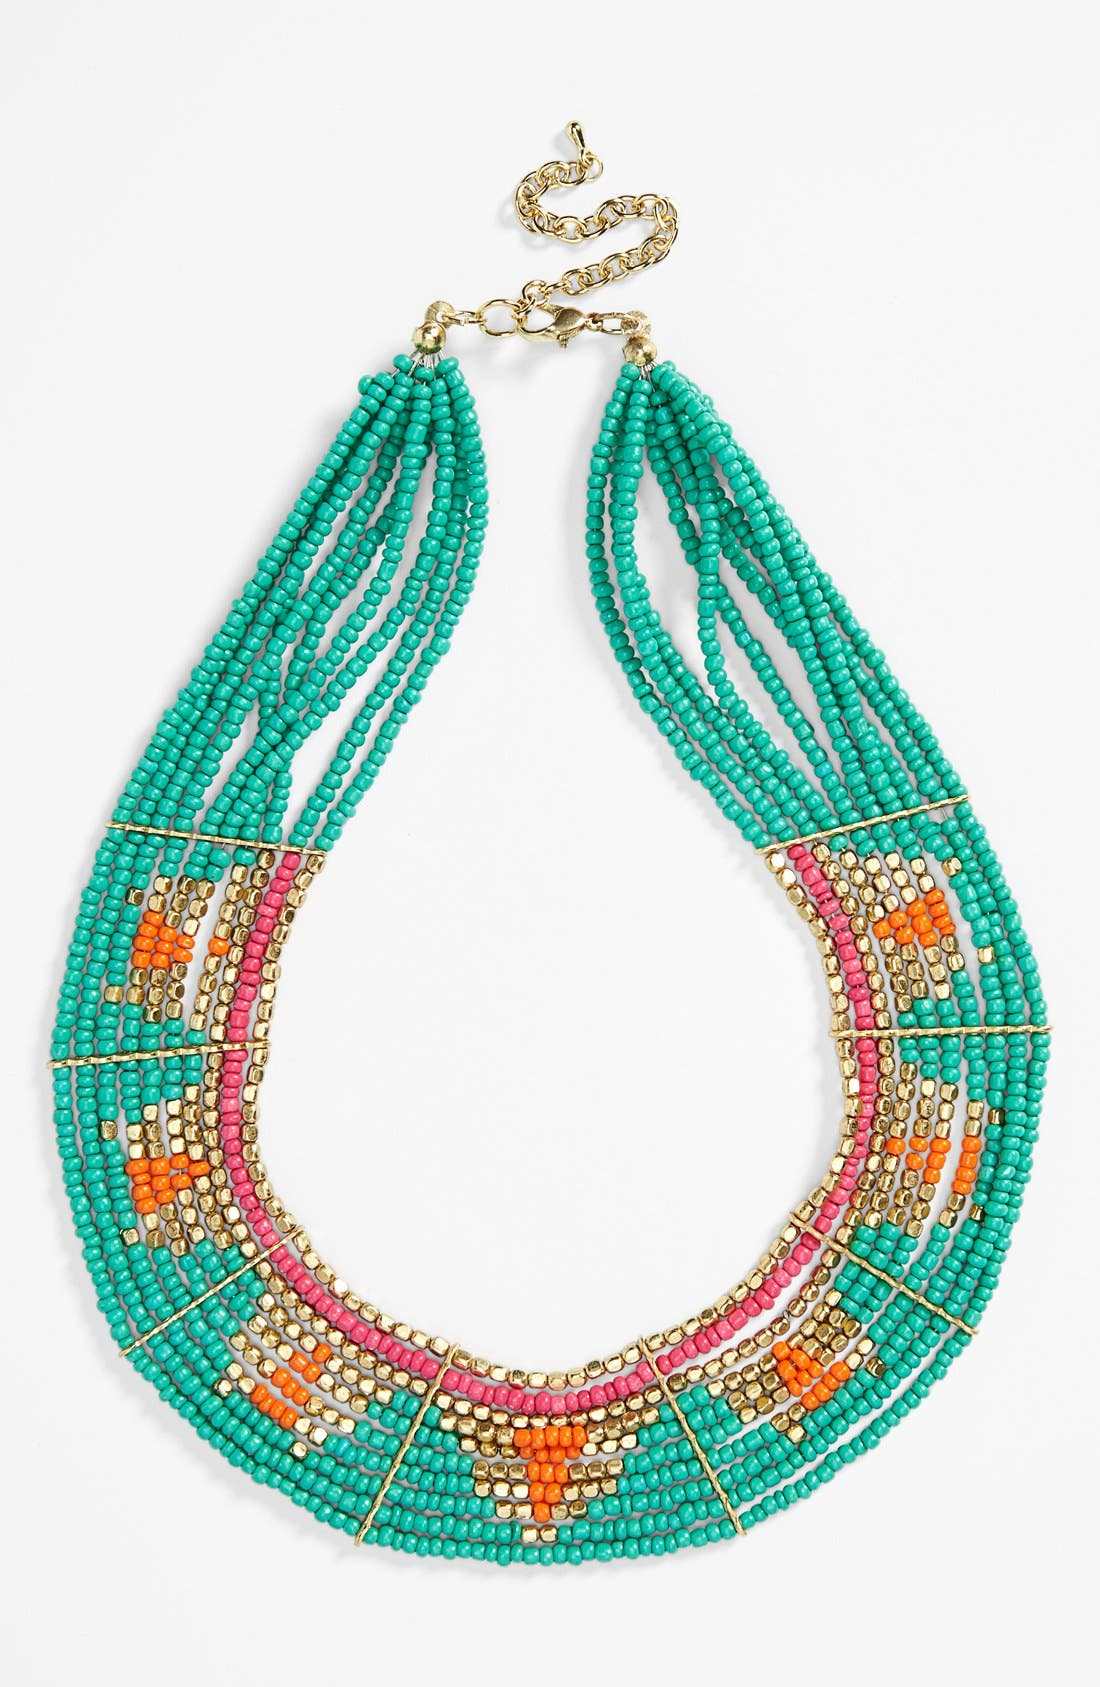 Alternate Image 1 Selected - BP. Geometric Seed Bead Collar Necklace